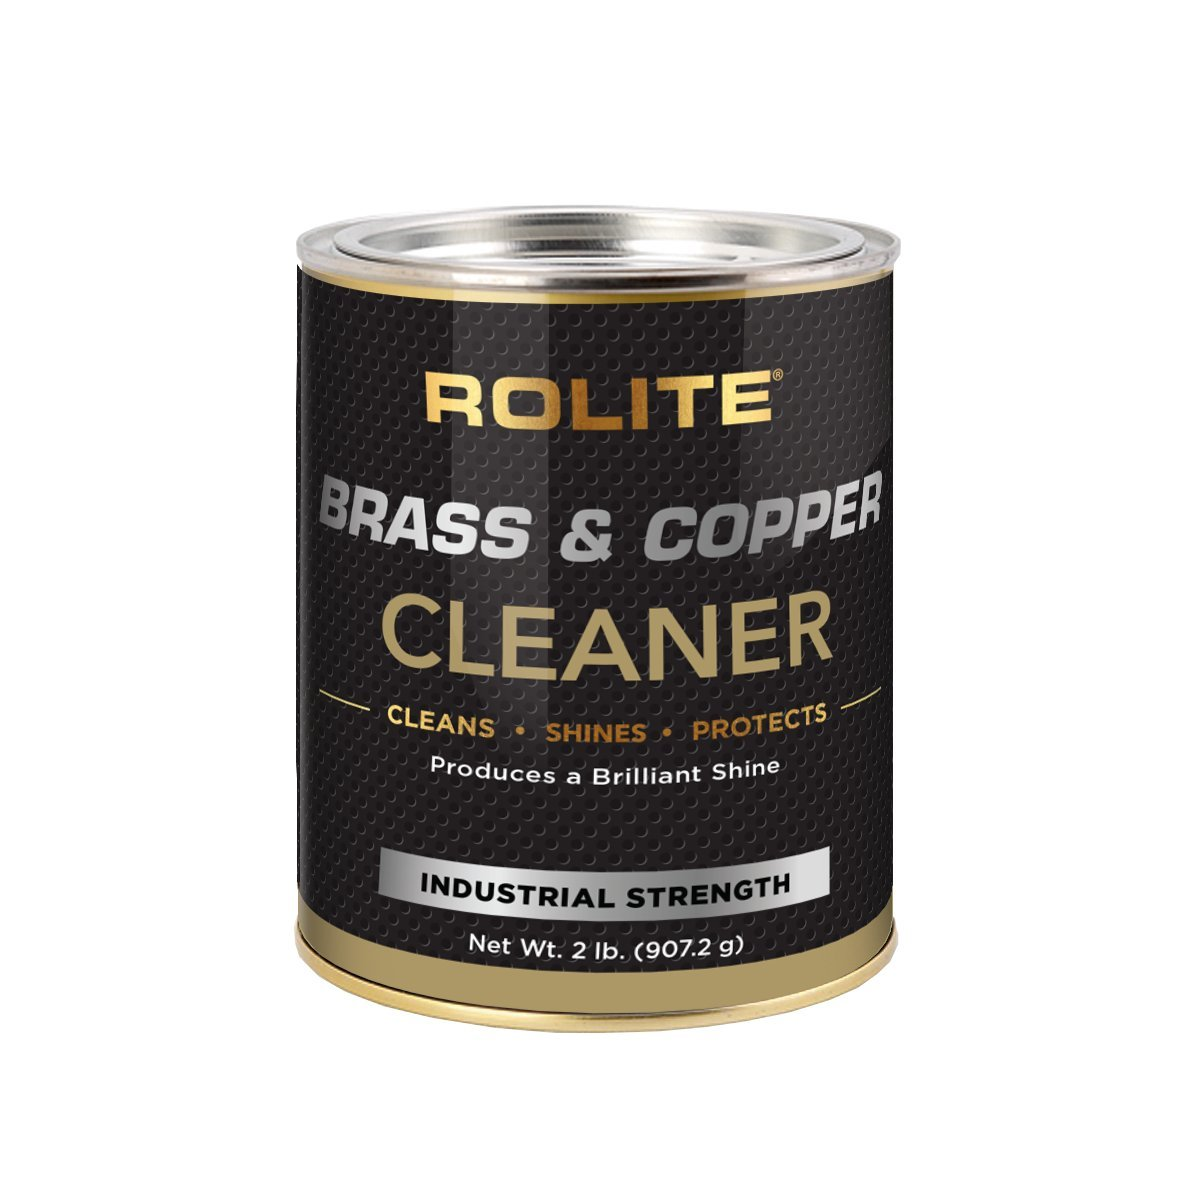 Brass & Copper Cleaner (2lb) Instant Cleaning & Tarnish Removal on Railings, Elevators, Fixtures, Hotels, Cruise Ships, Office Buildings